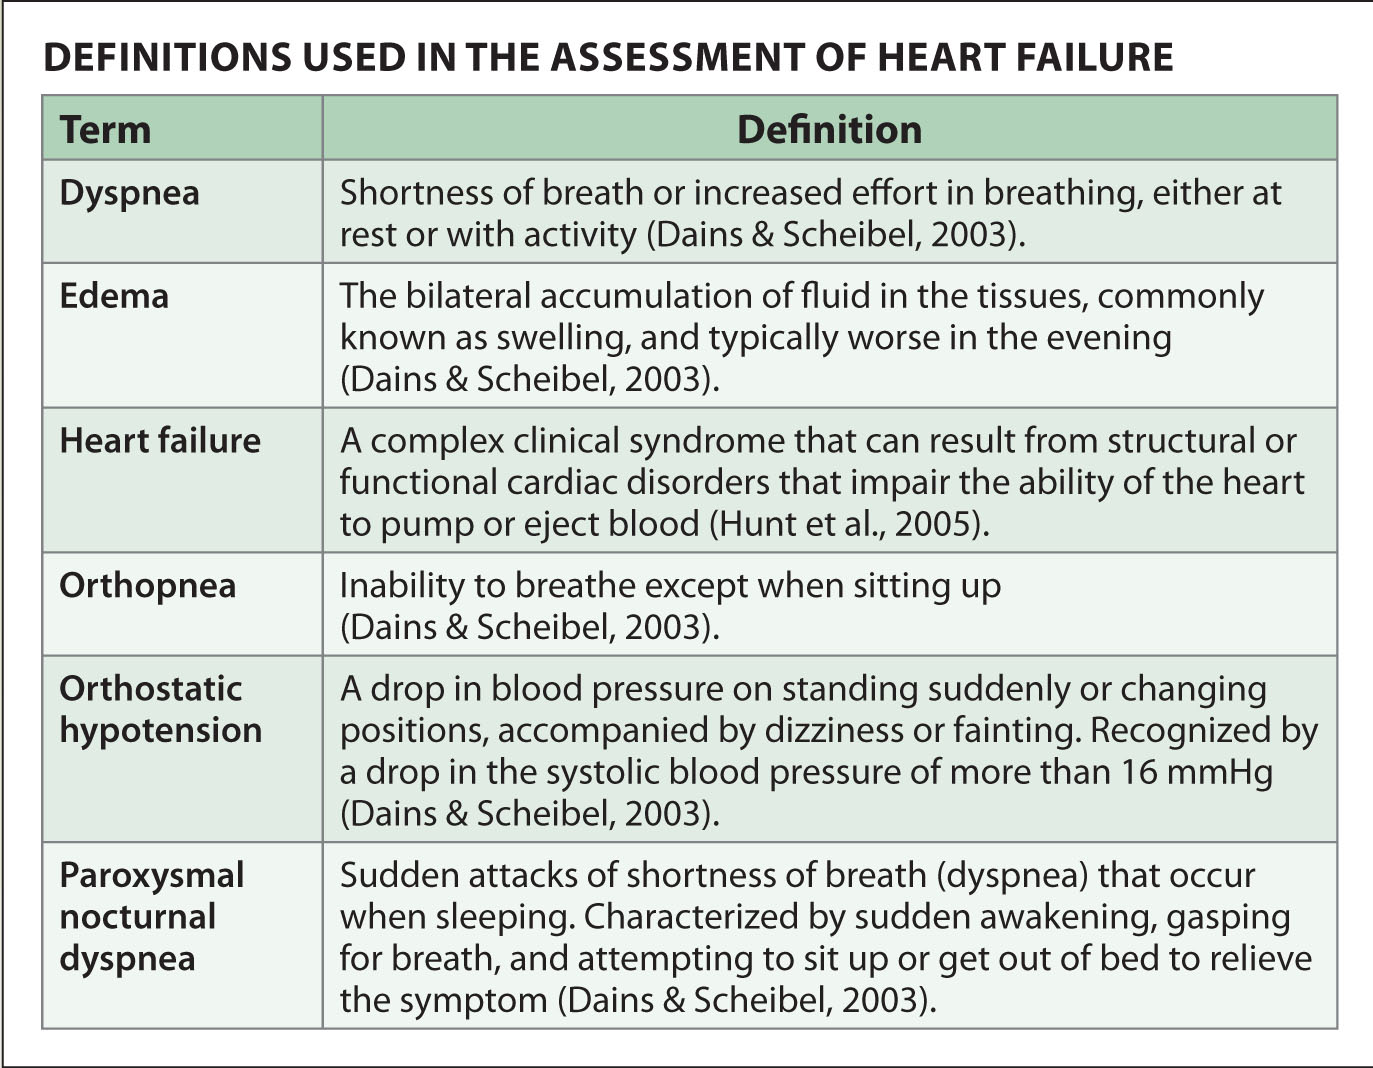 nursing case study for heart failure Managing the psychosocial aspects of heart failure: a case study there is no standard way of managing the psychosocial aspects of heart failure.